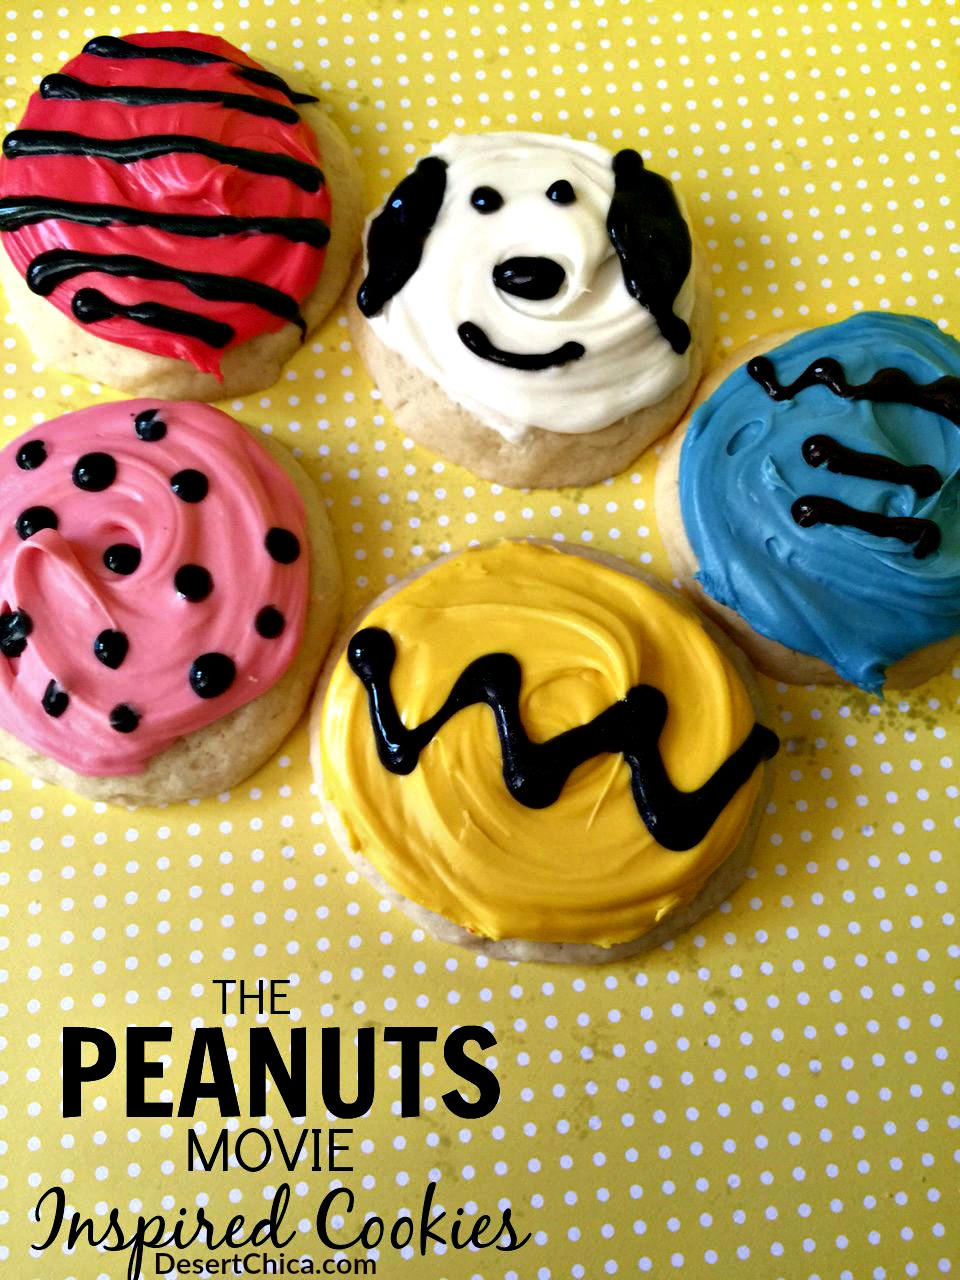 The Peanuts Movie Inspired Cookies